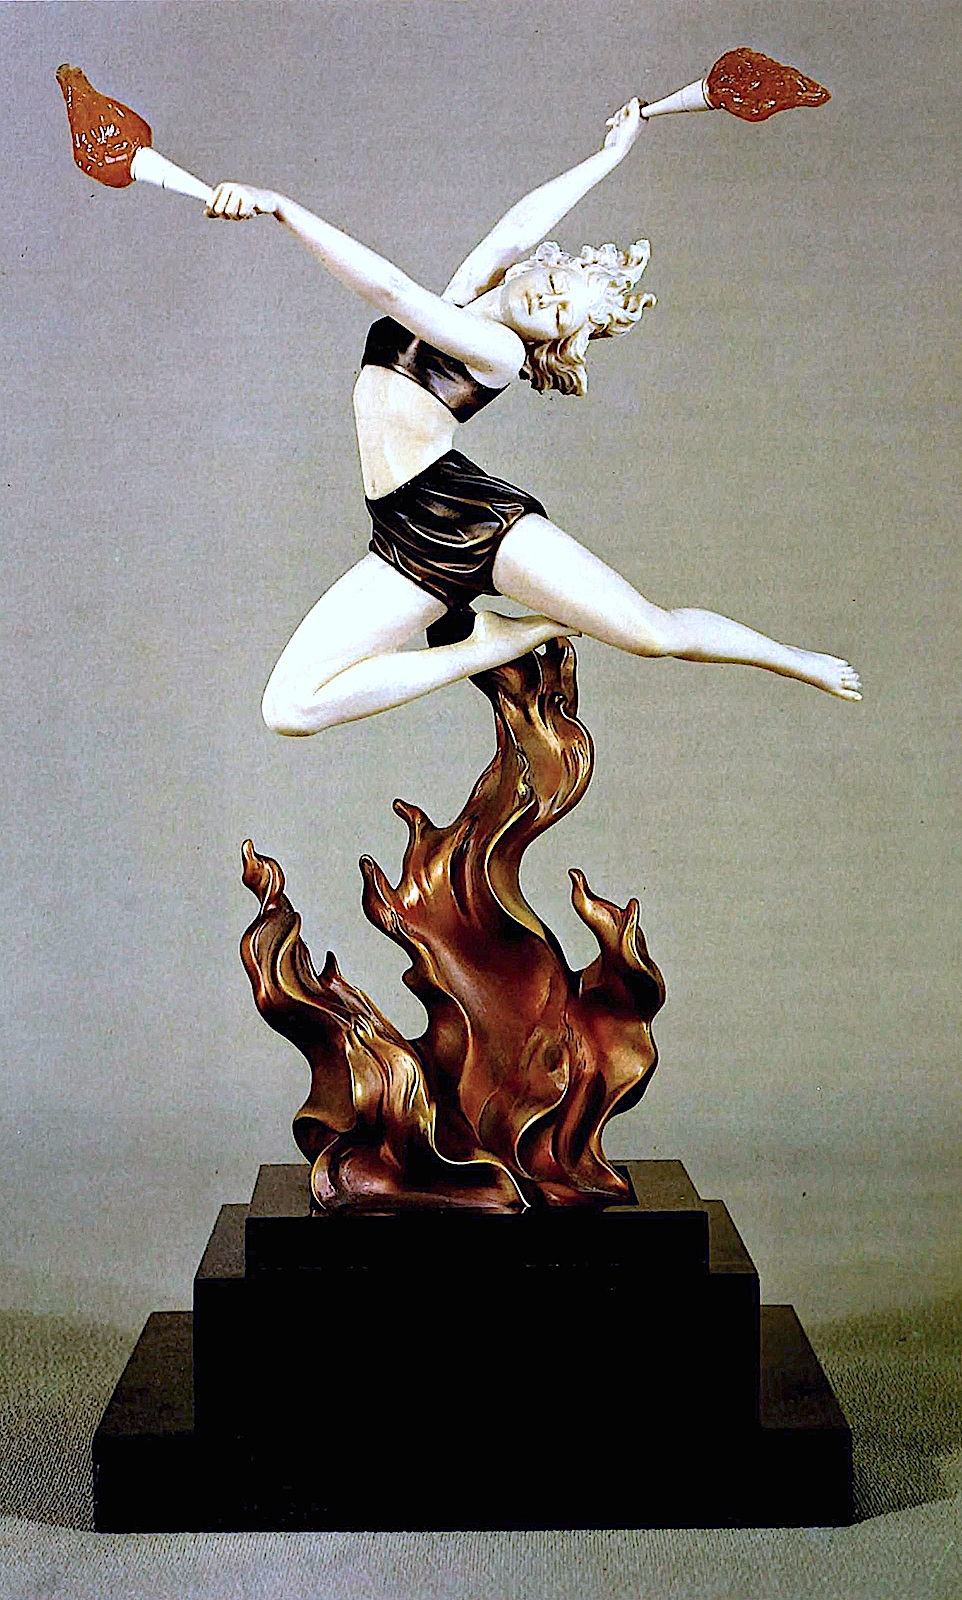 a 1920s Ferdinand Preiss statuette of a woman dancer leaping over fire, a color photograph